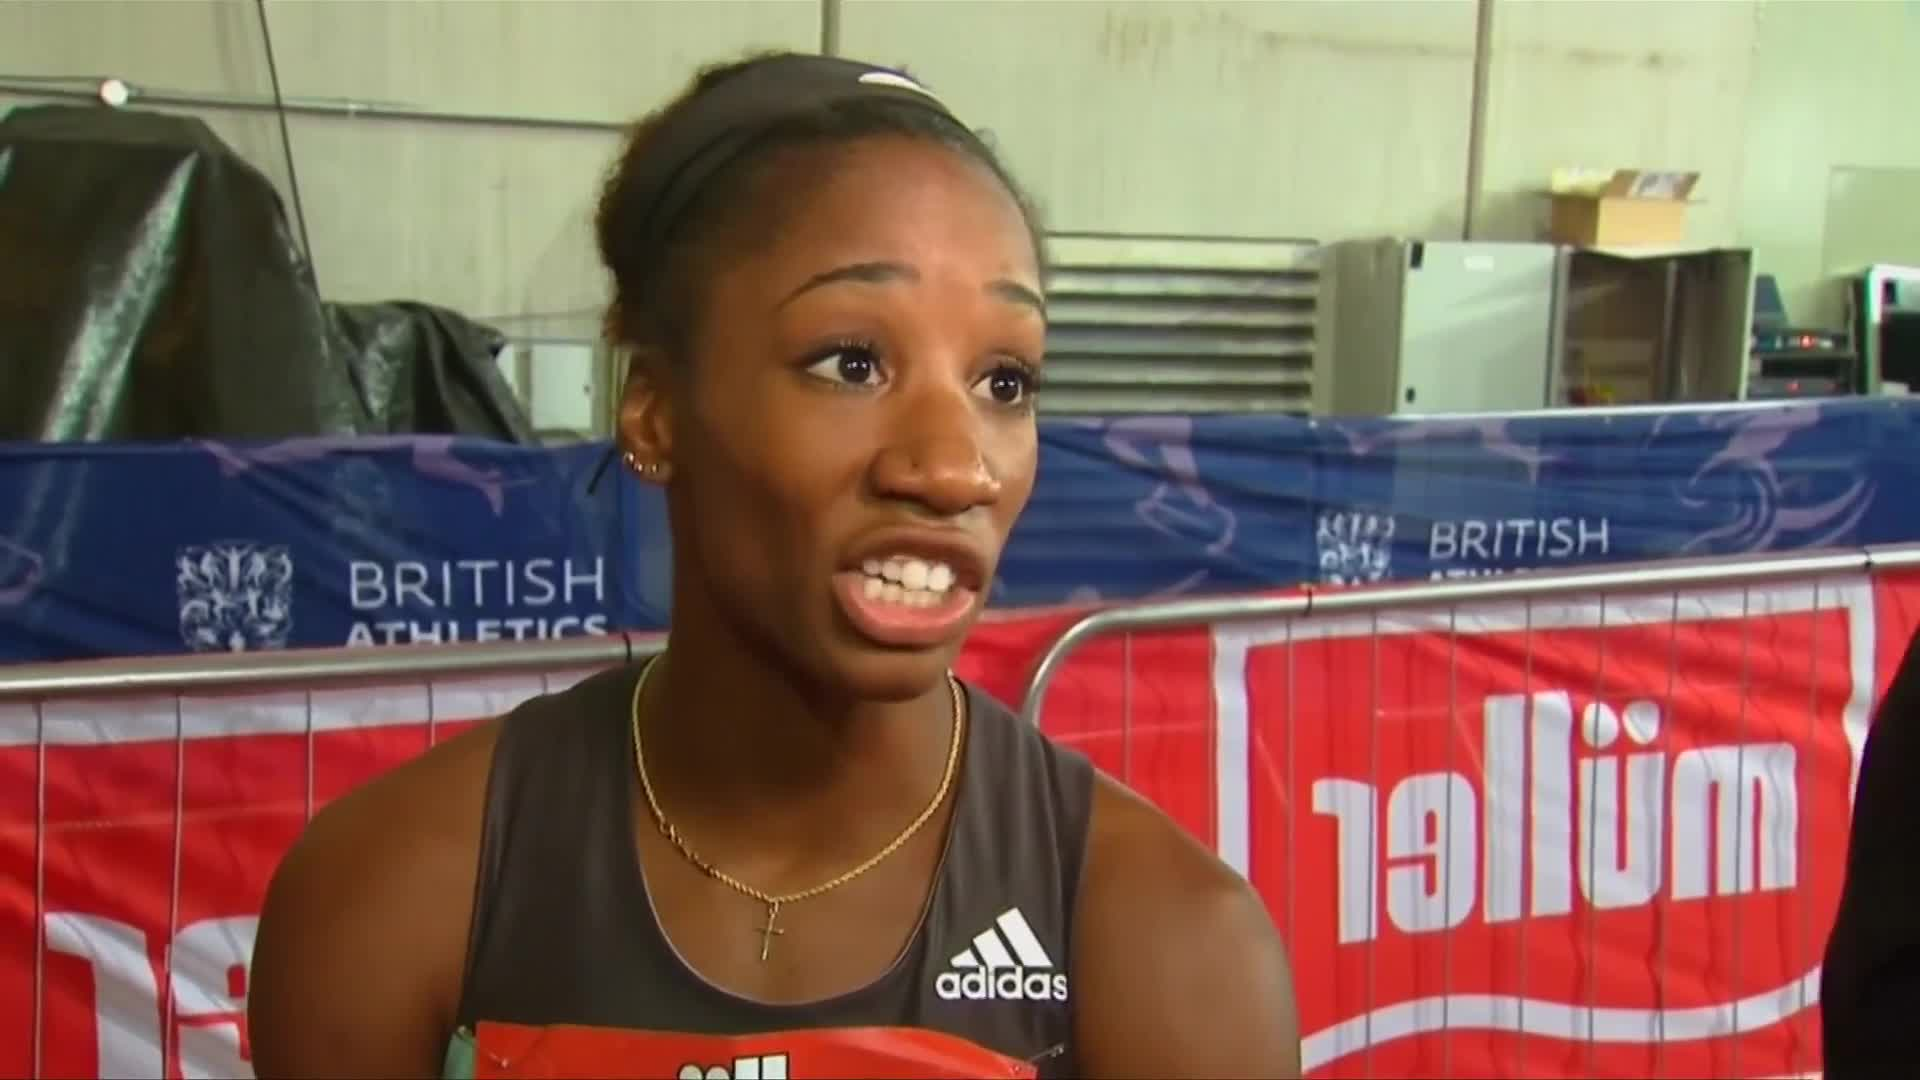 One of the best days in my life, says record breaker Kendra Harrison